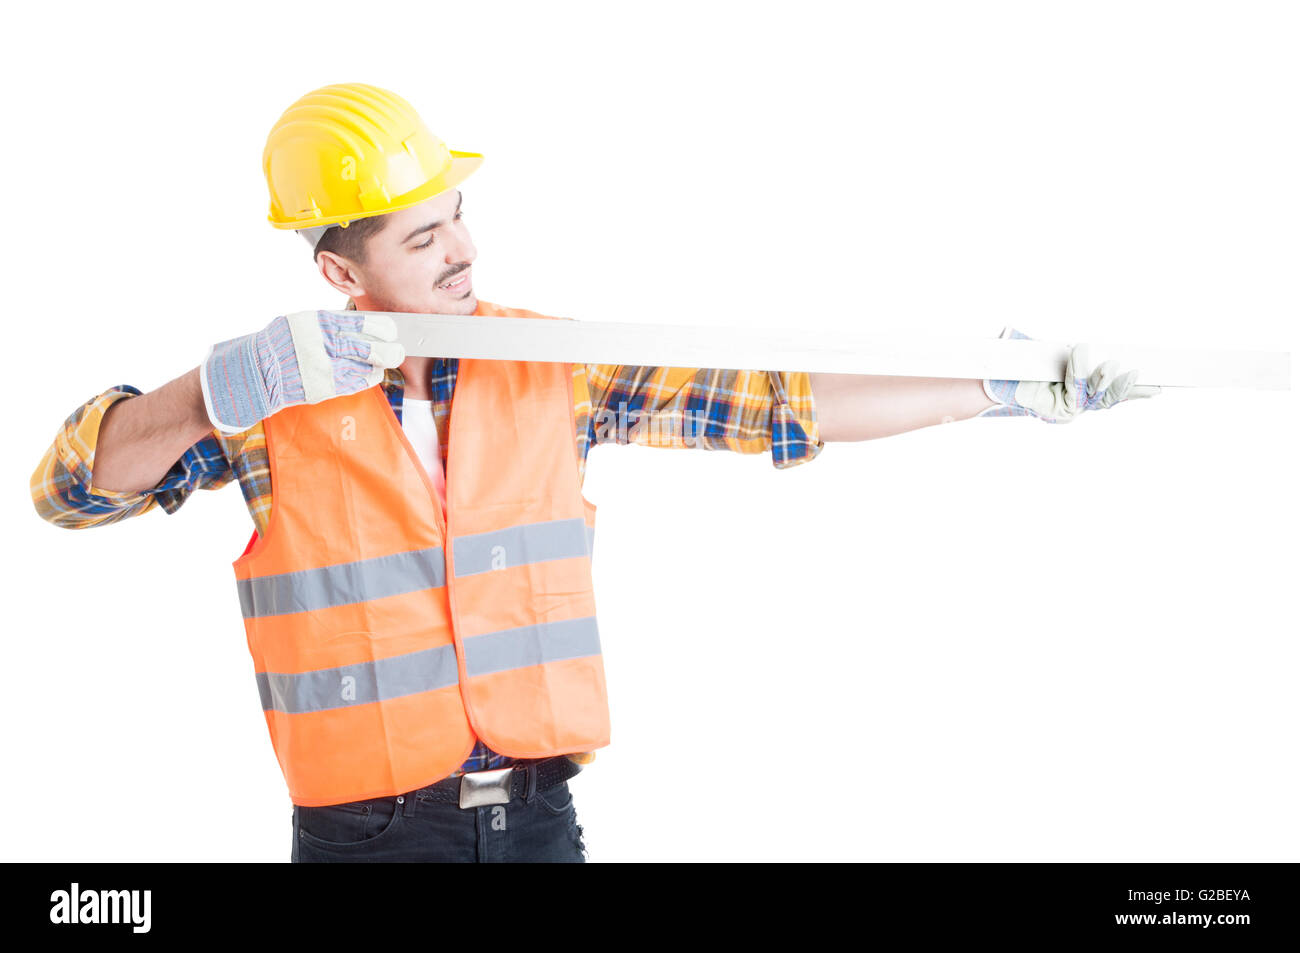 Successful architect holding a meter instrument to measure length as precise measurement concept isolated on white - Stock Image